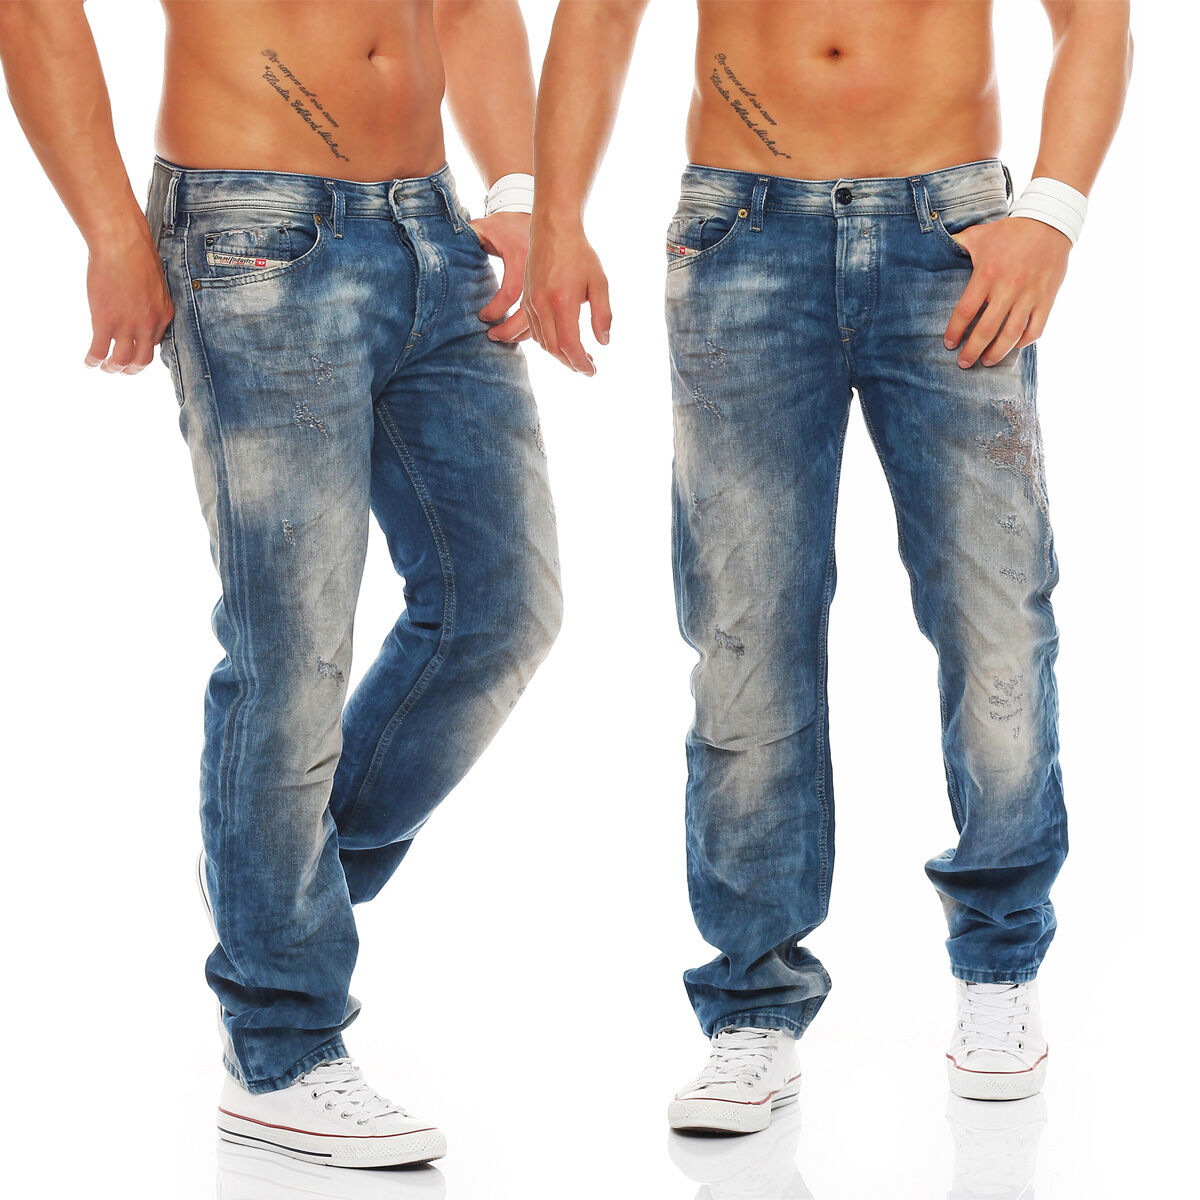 Diesel Jeans Waykee 0603Z Men's Trousers bluee Eyecons Edition Collection New RAR